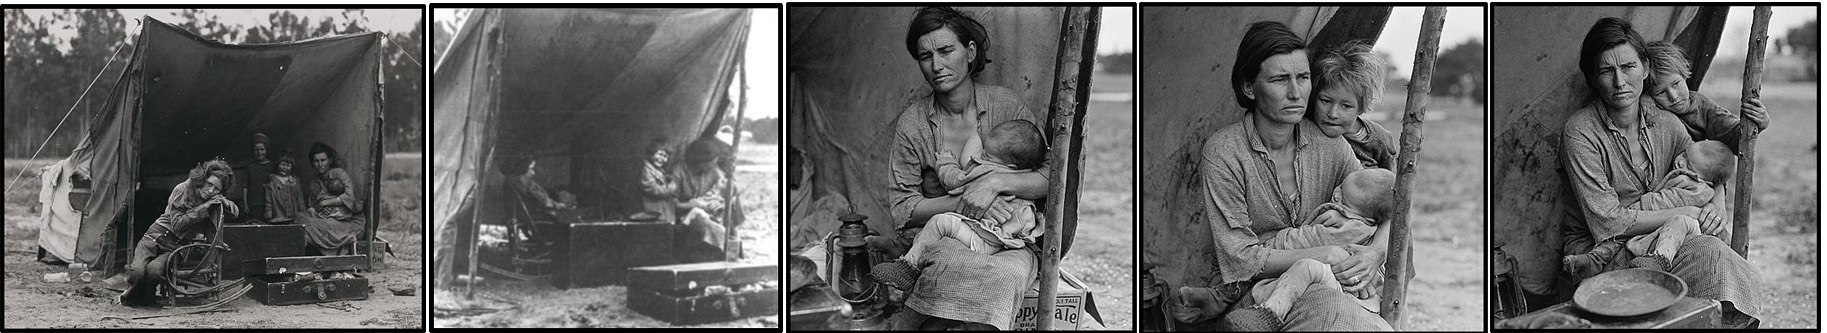 https://upload.wikimedia.org/wikipedia/commons/e/e1/Florence_Owens_Thompson_montage_by_Dorothea_Lange.jpg